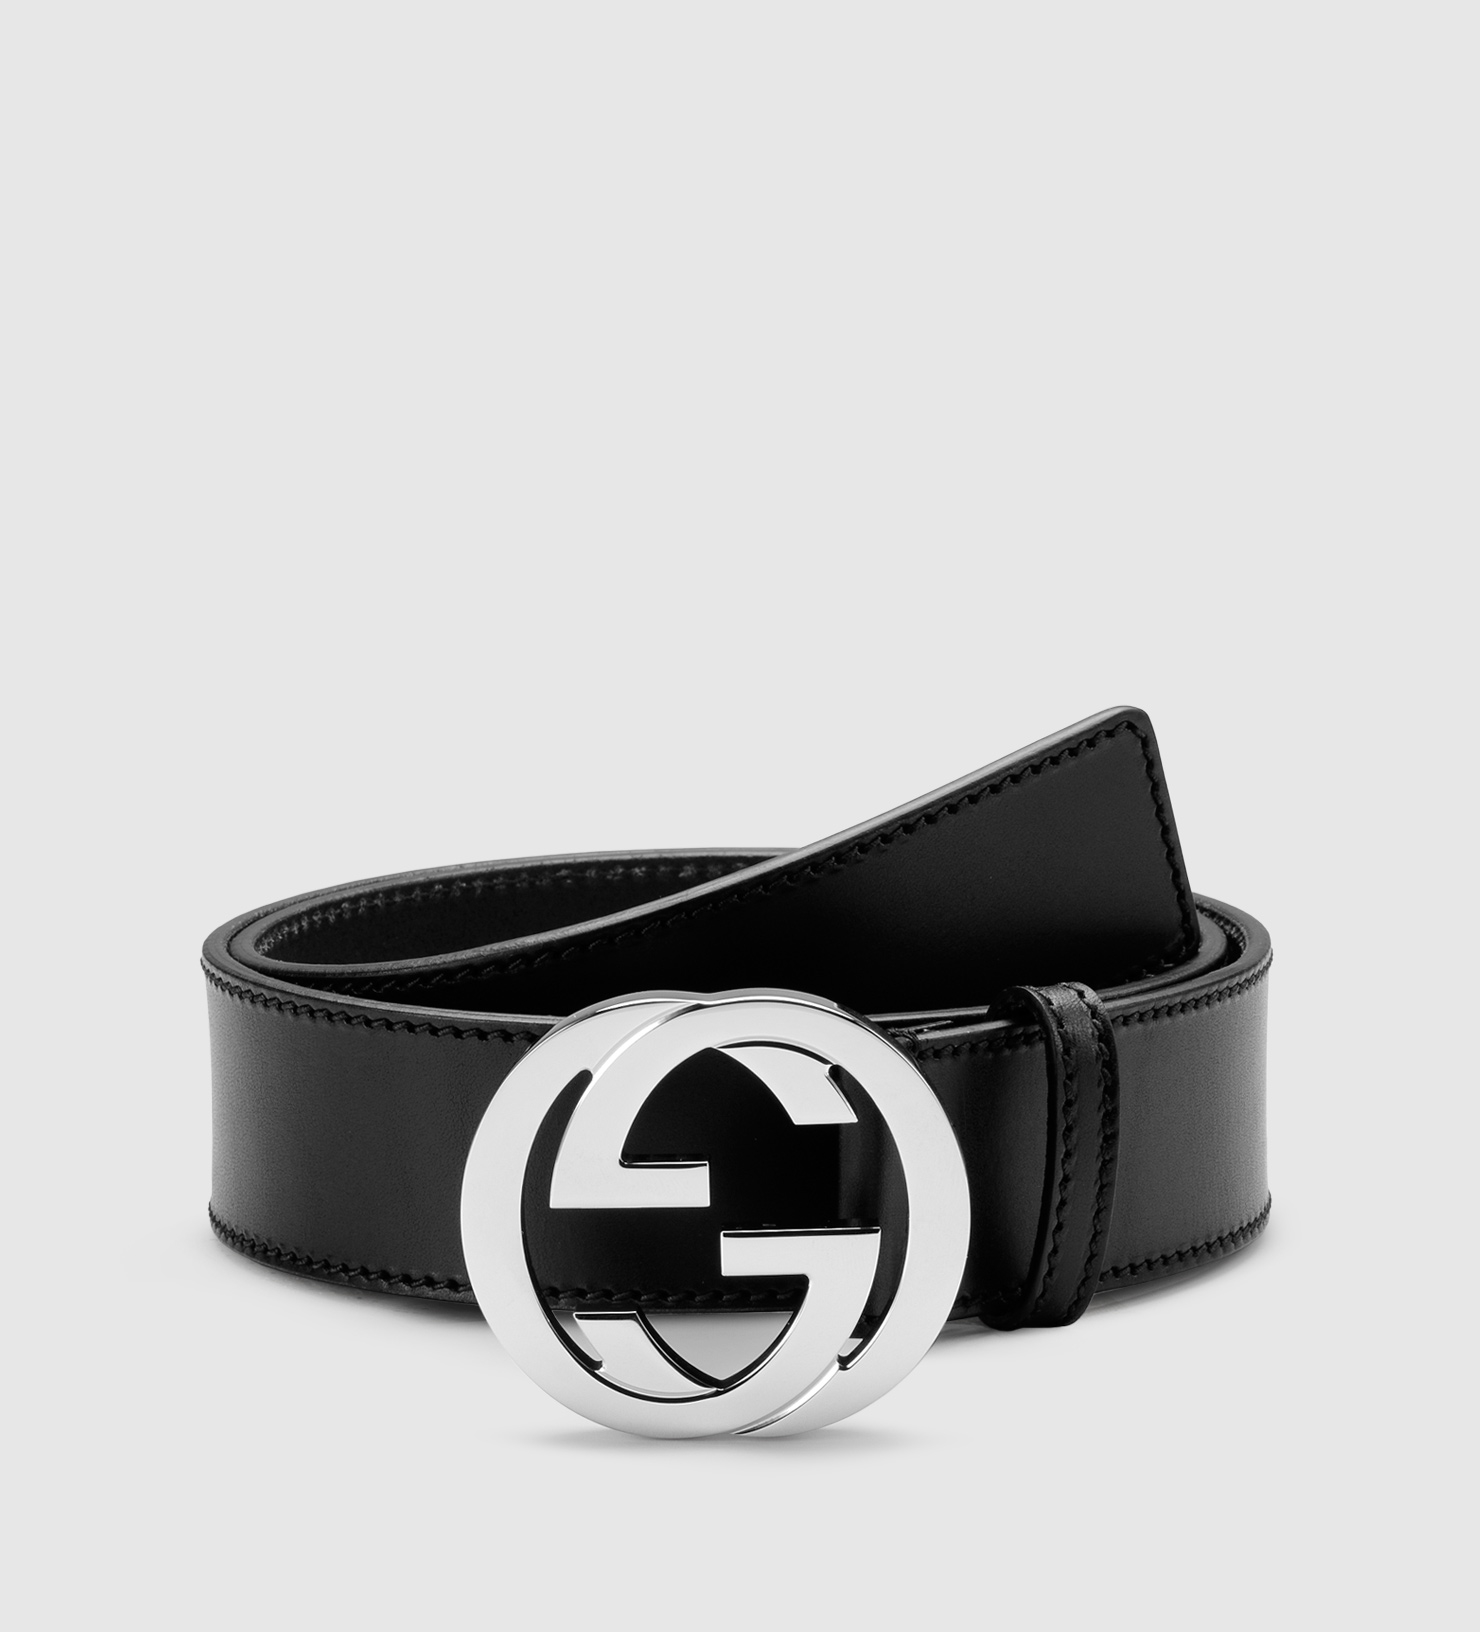 7240805f4 Gucci Leather Belt With Interlocking G Buckle in Black for Men - Lyst